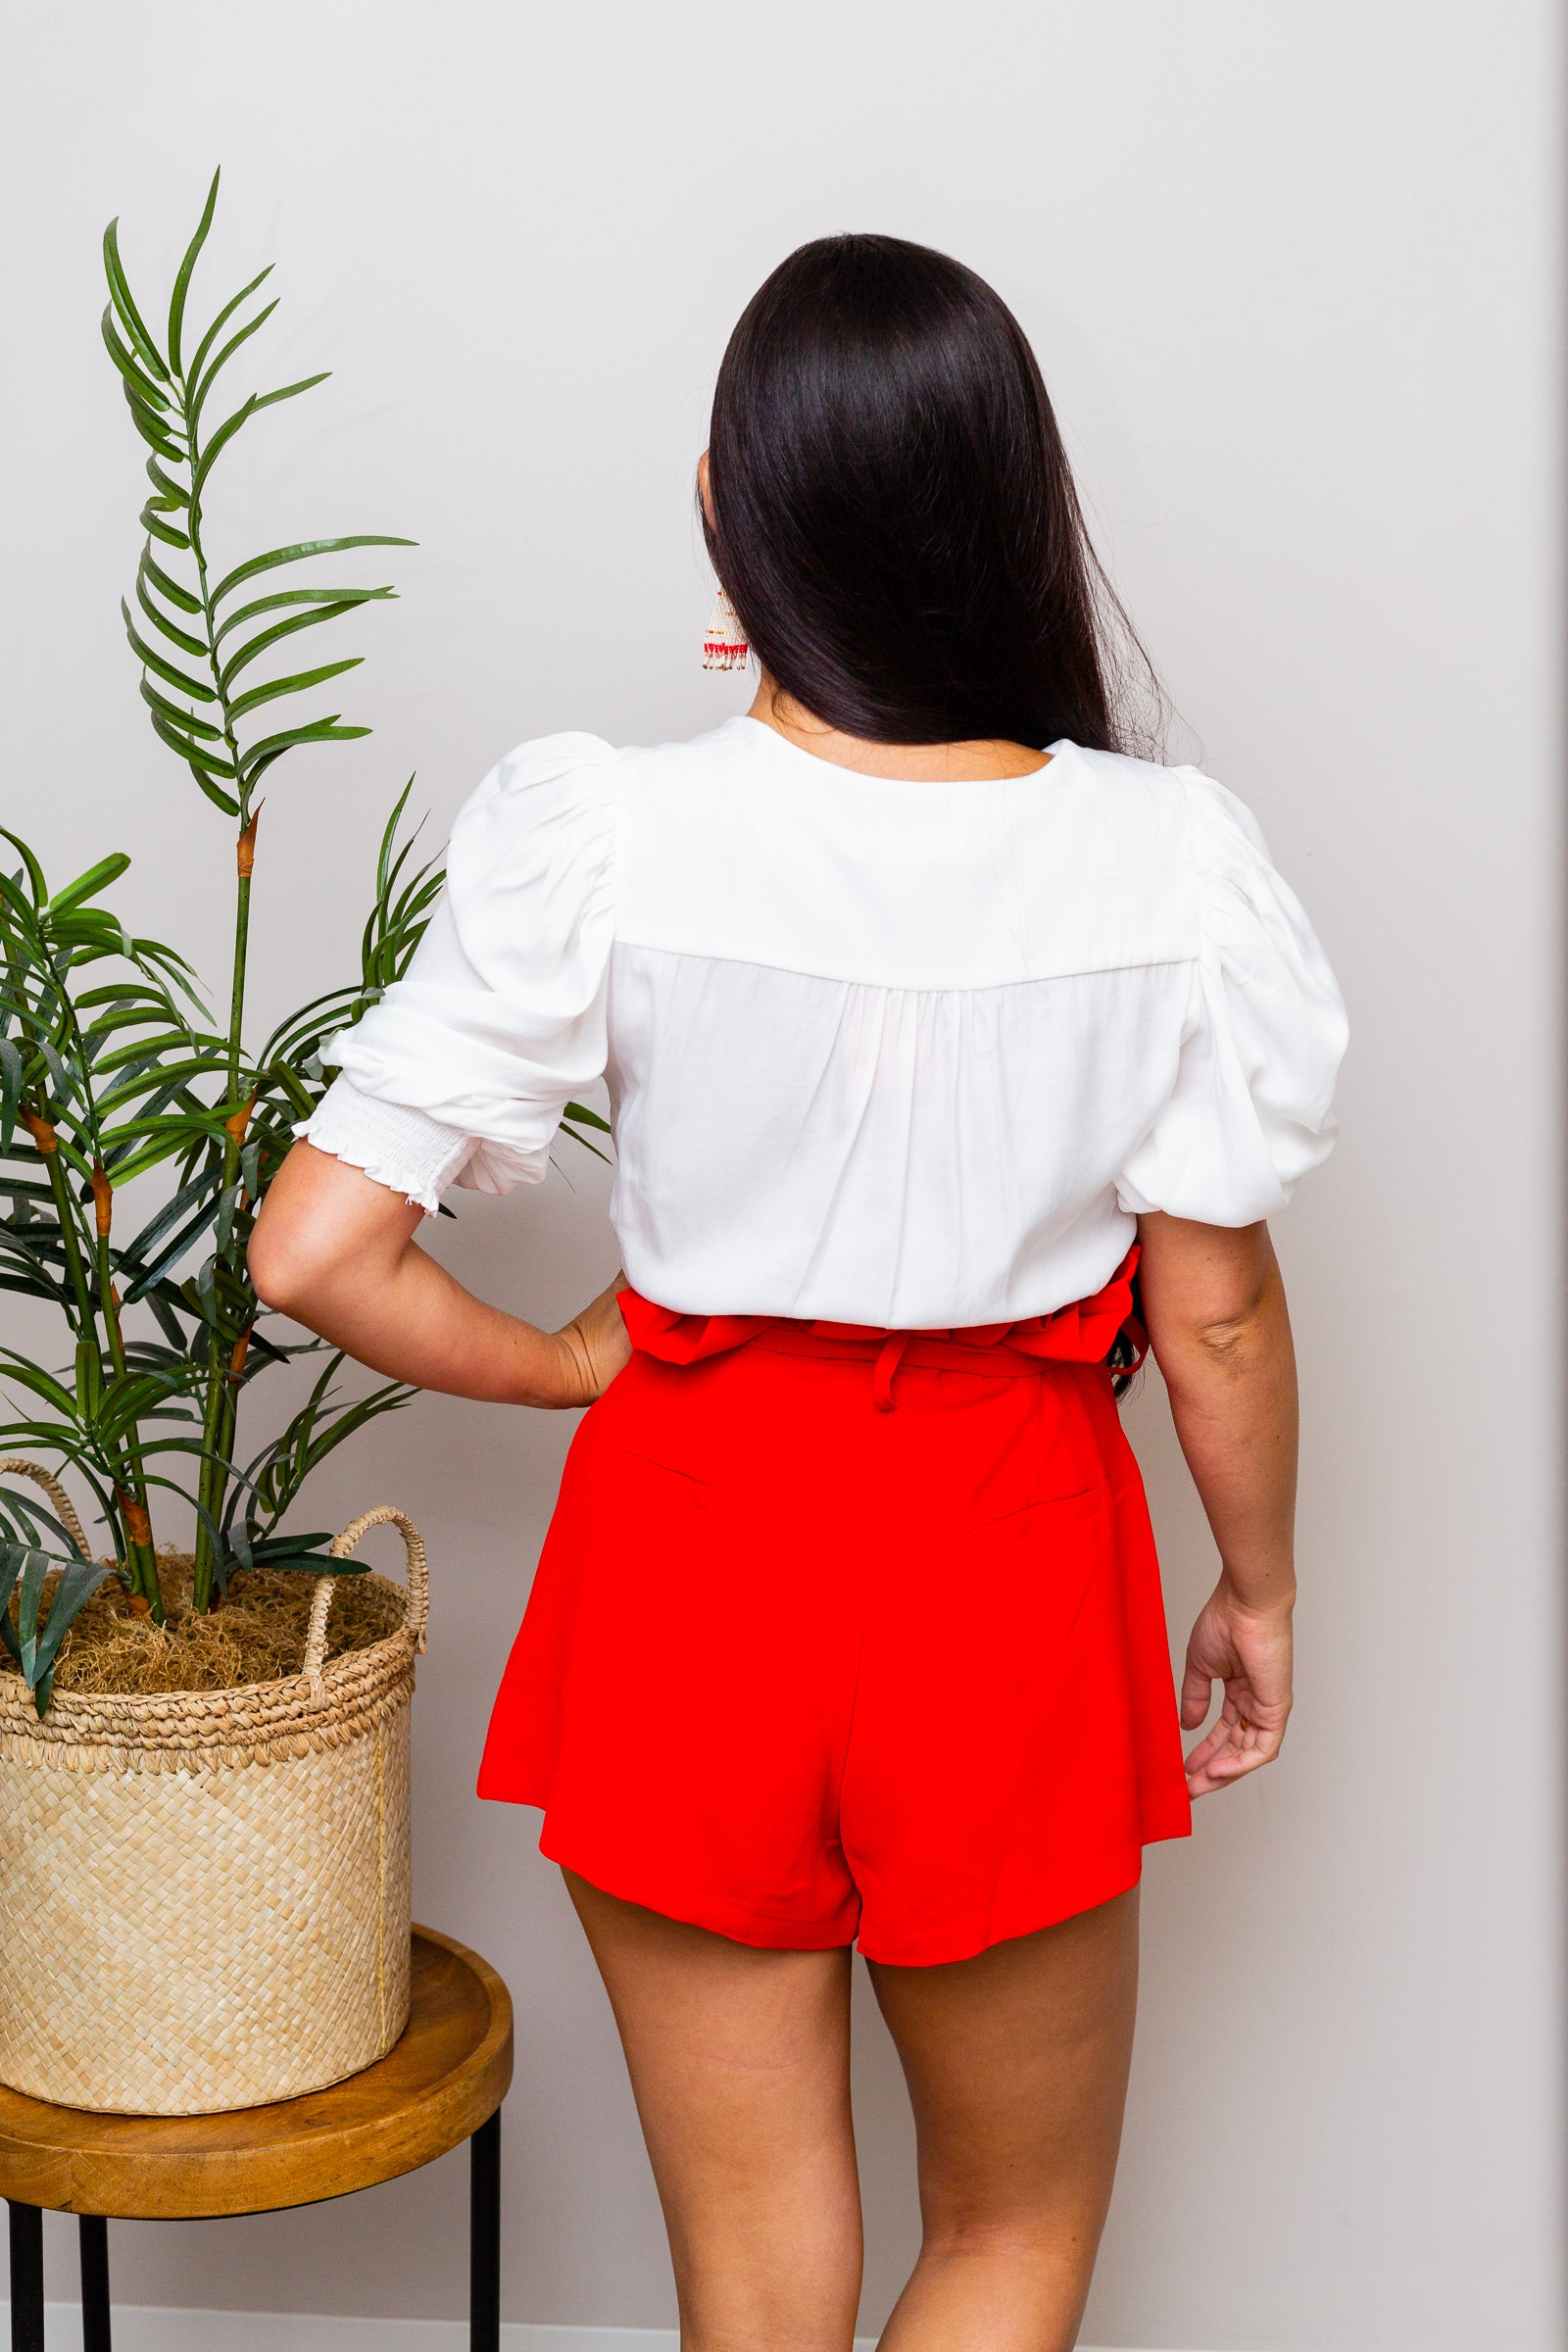 Paper-bag style hem before leading to a fitted waistband with belt loops and leading hook clasps and a zipper fly and flow into comfortable shorts with prominent square pockets on the side.